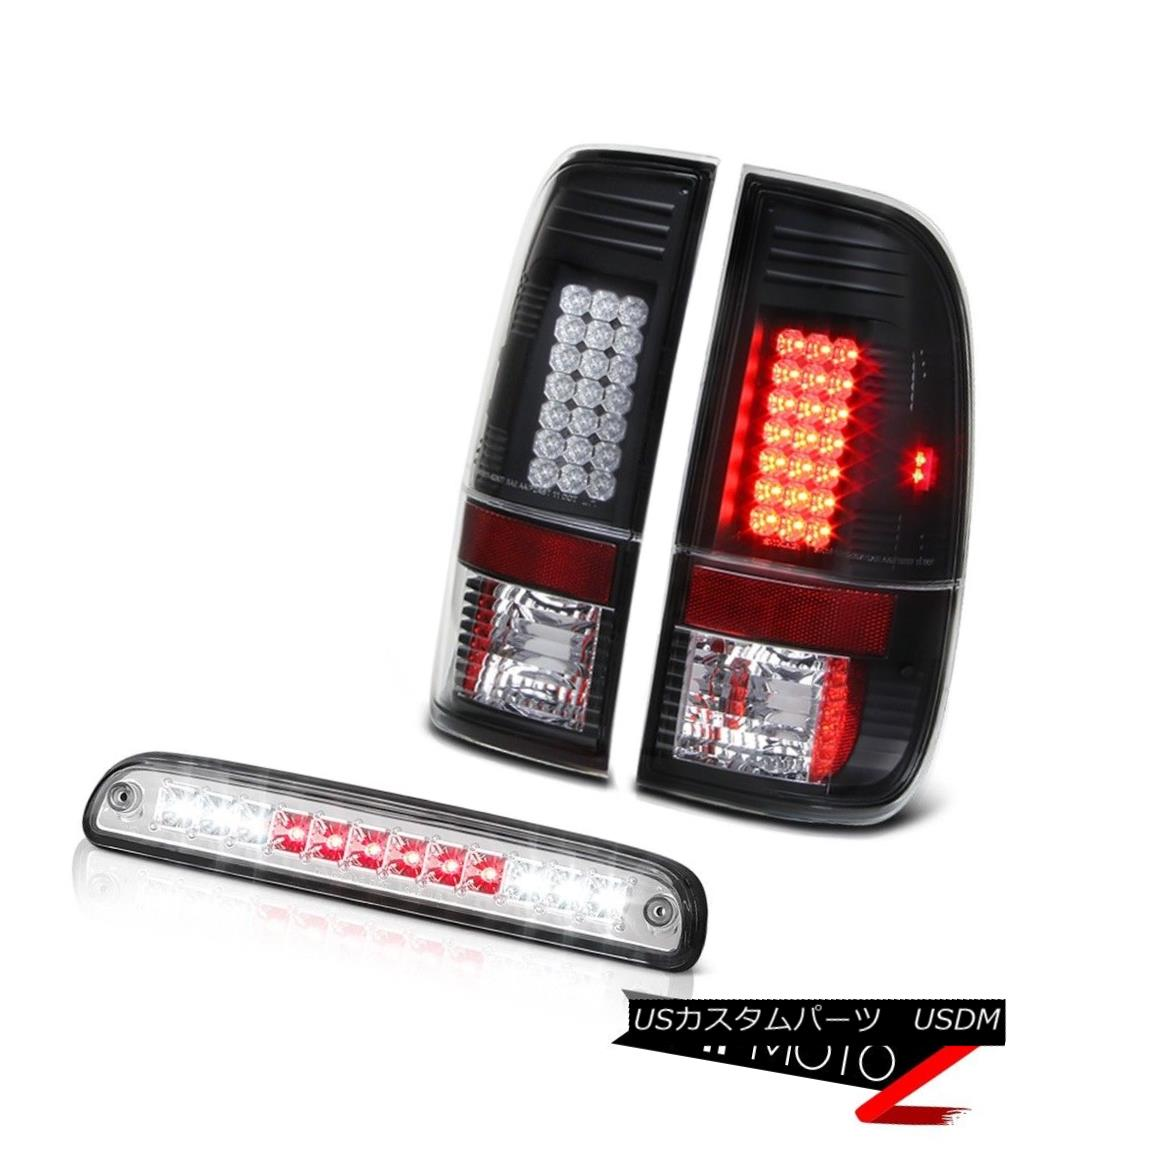 テールライト 08-10 Ford F-350 SuperDuty Lariat S.M.D Brake Signal Tail Lights High Cargo LED 08-10 Ford F-350 SuperDuty Lariat S.M.Dブレーキ信号テールライトHigh Cargo LED